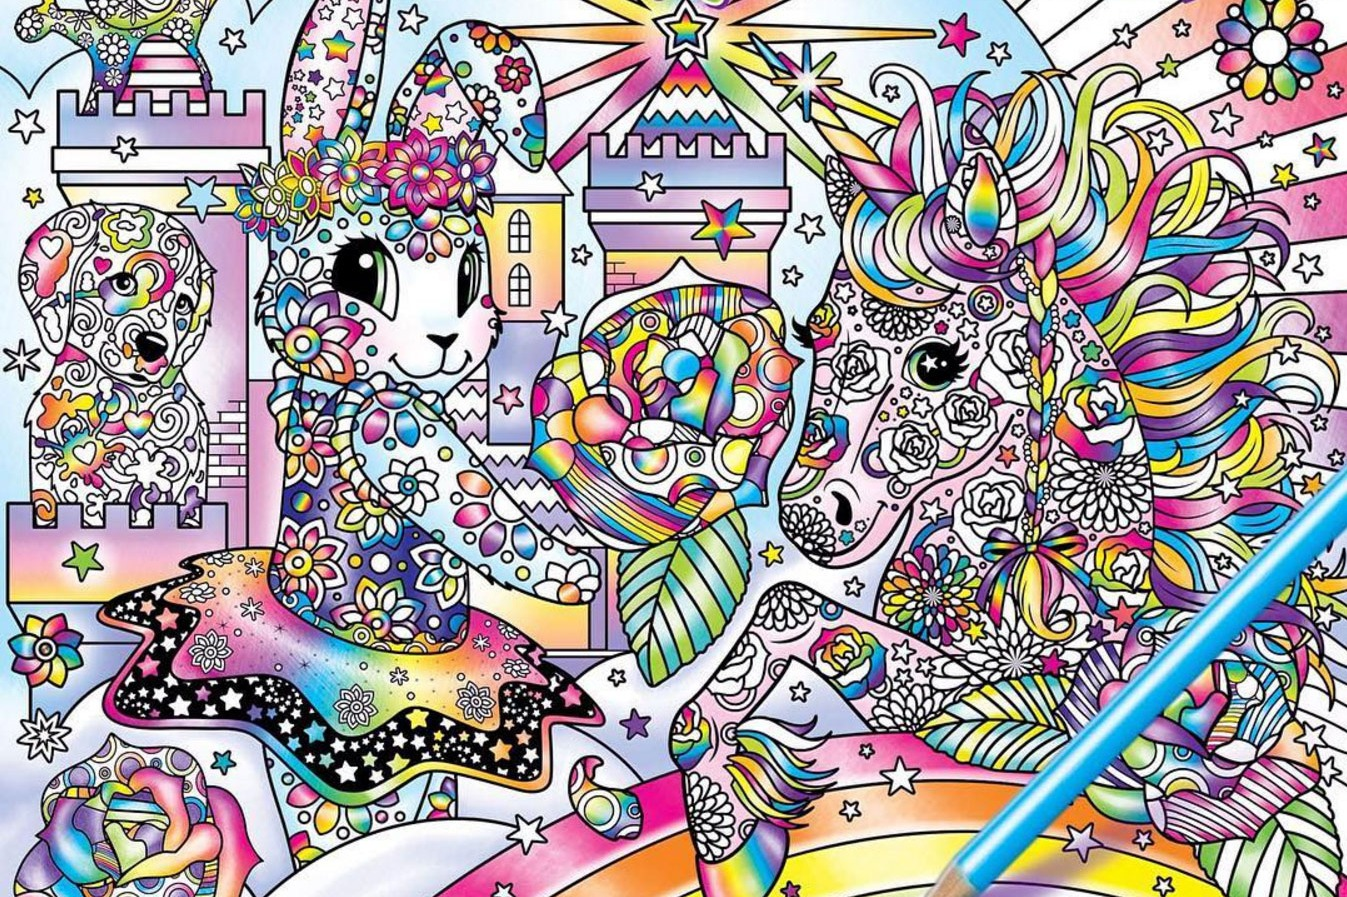 Lisa Frank '90s Adult Coloring Book' Wins Today's Internet Mad Libs